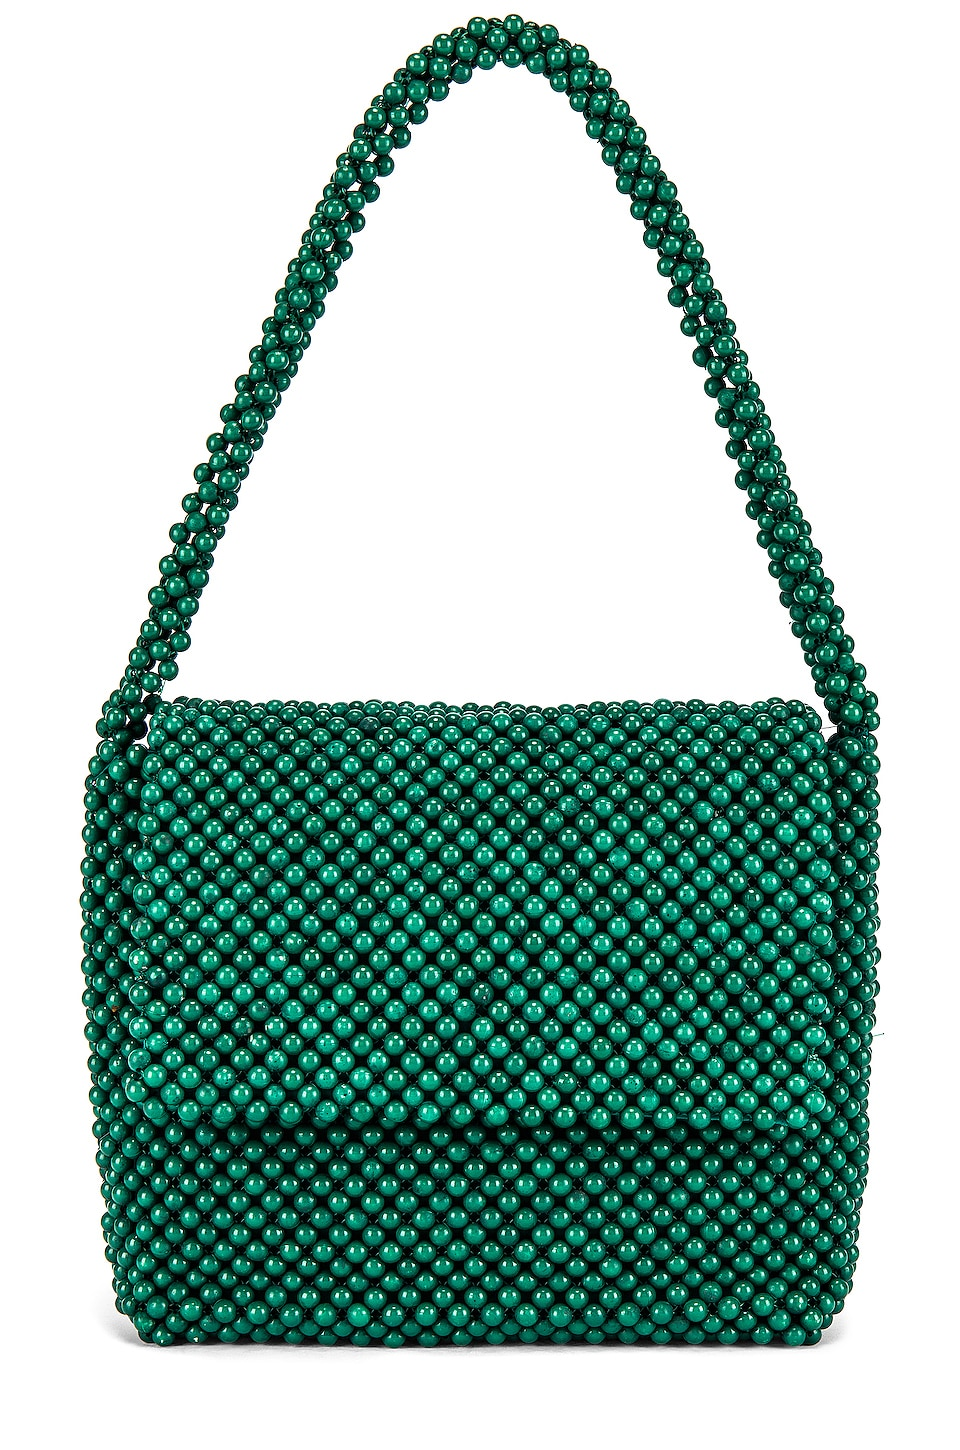 Cleobella Richie Bag in Emerald